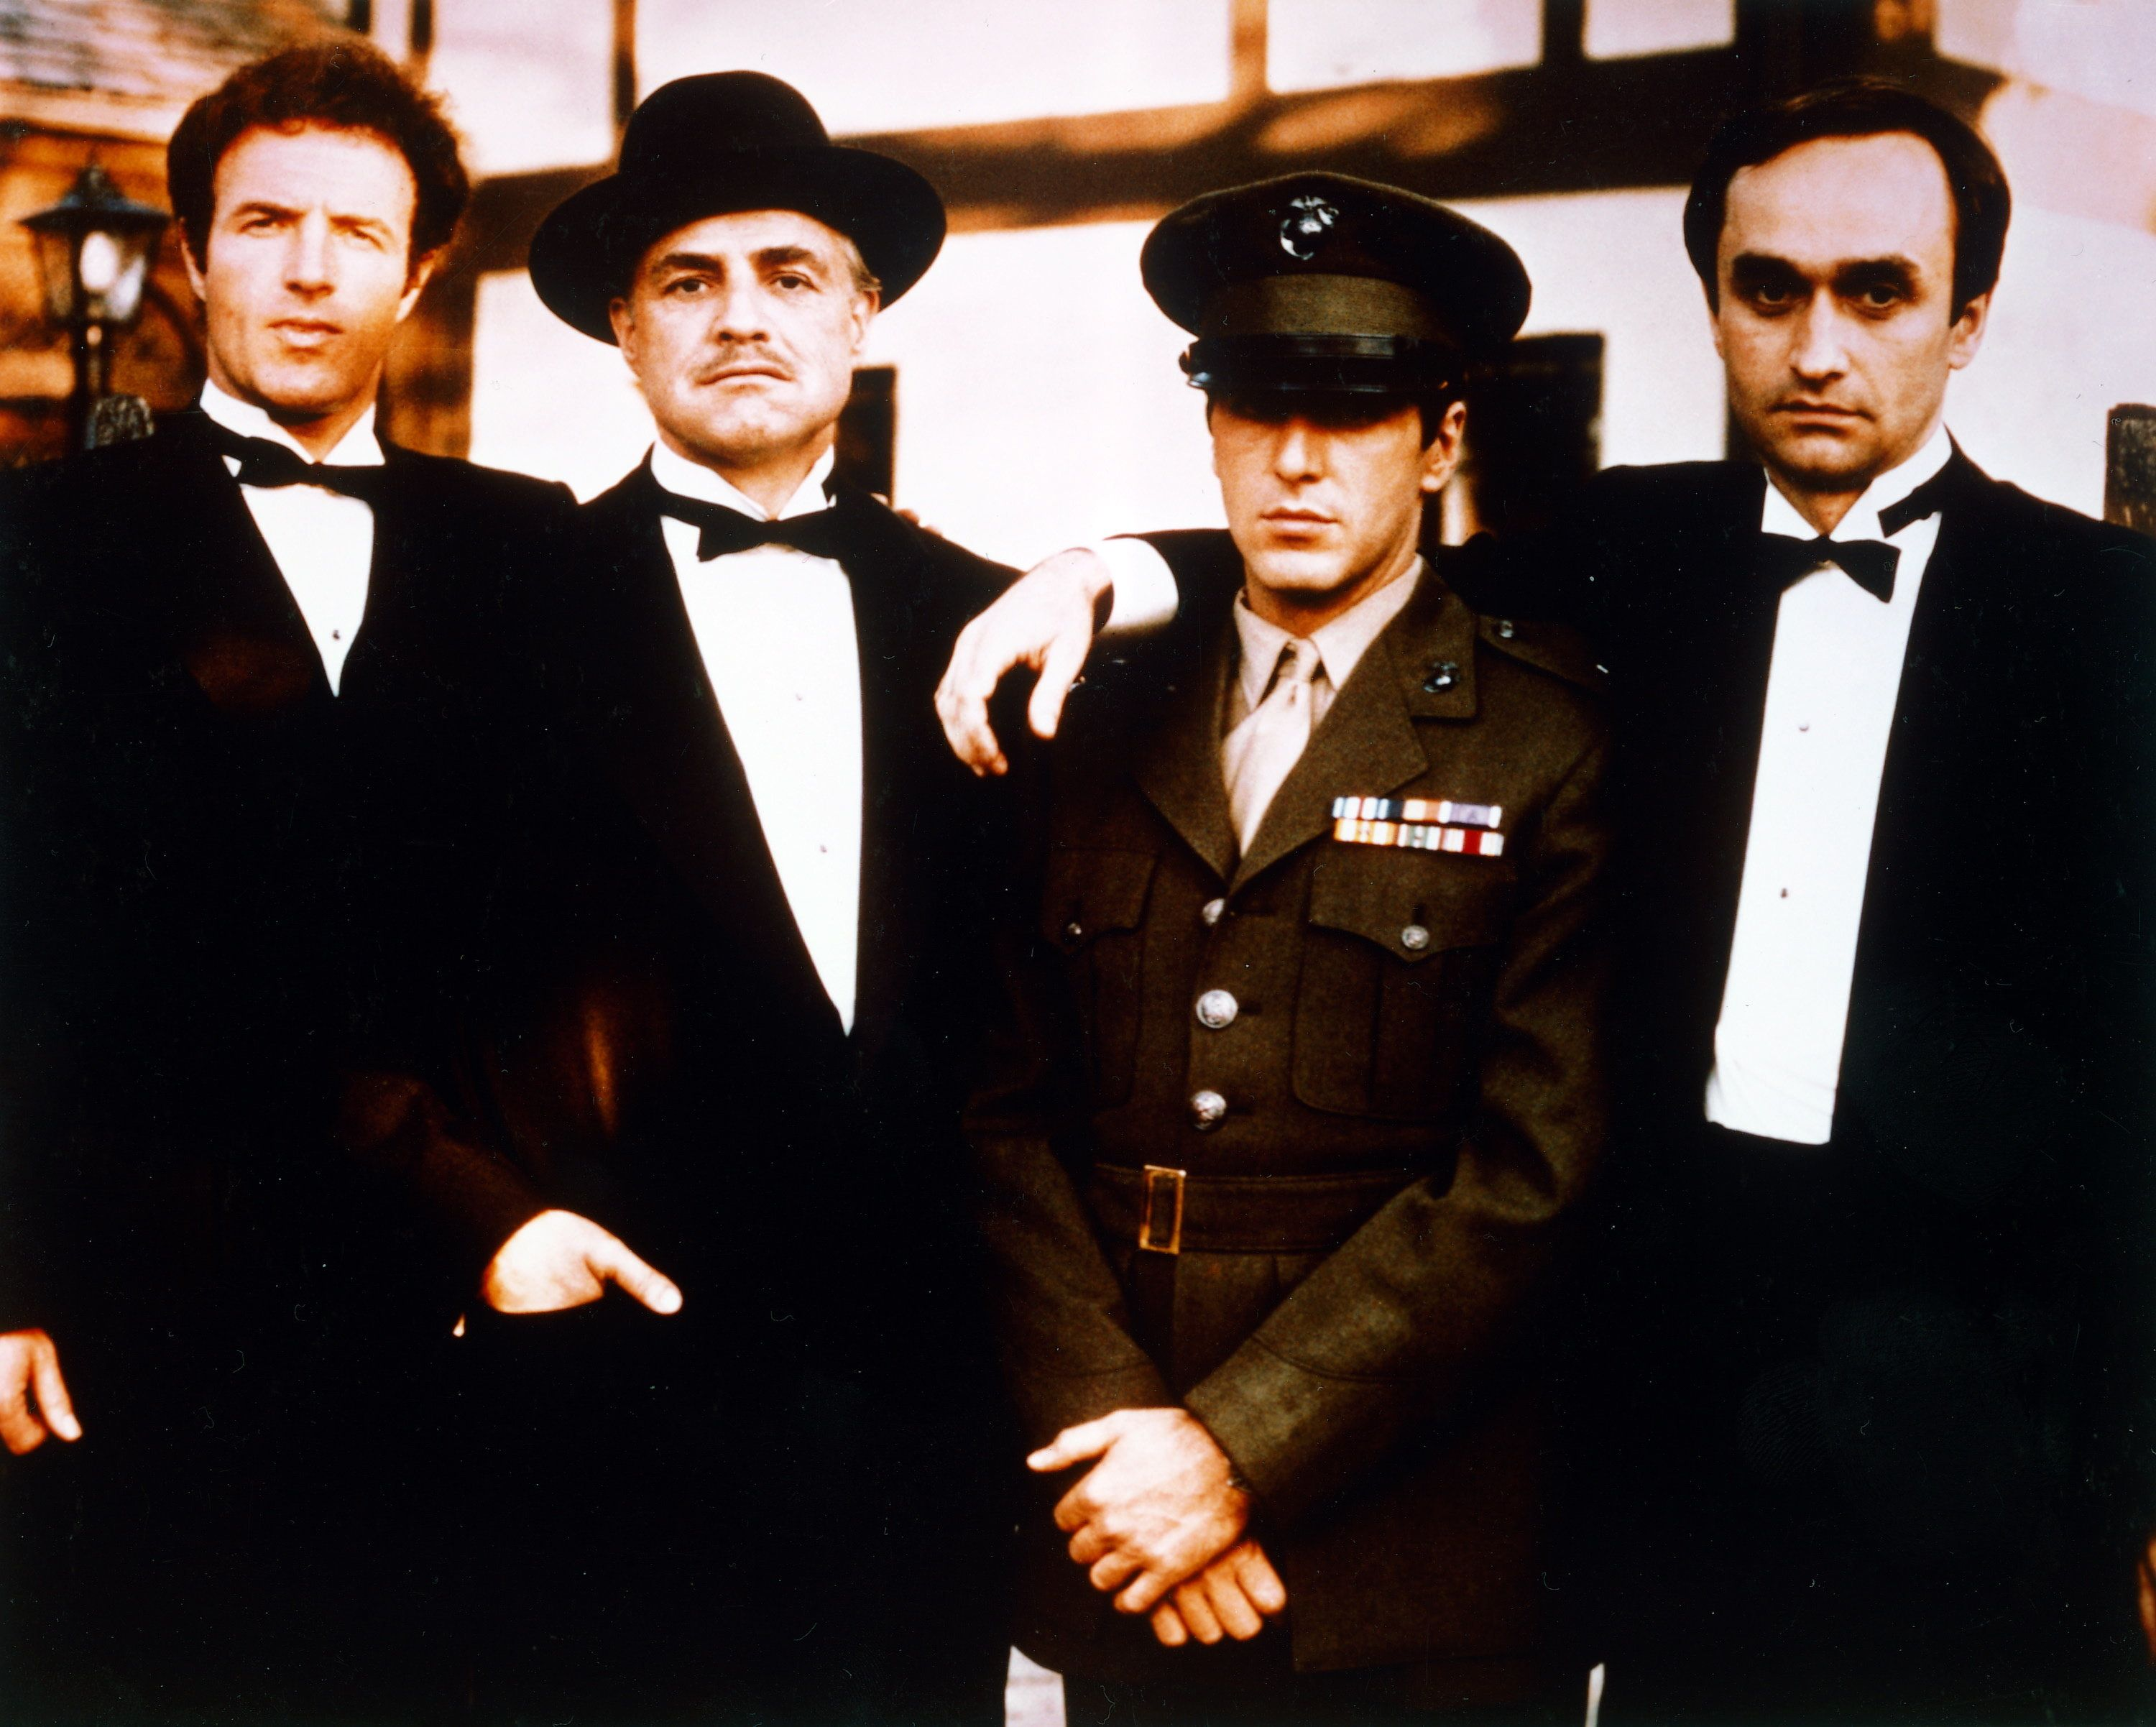 From left: James Caan, US actor, Marlon Brando (1924–2004), US actor, Al Pacino, US actor, and John Cazale (1935-1978), US actor, all in black suits, shite shirts and black bow ties except for Pacino who wears a military uniform, pose for a group portrait issued as publicity for the film, 'The Godfather', 1972. The mafia drama, directed by Francis Ford Coppola, starred Caan as 'Santino 'Sonny' Corleone', Brando as 'Don Vito Corleone', Pacino as 'Michael Corleone', and Cazale as 'Fredo Corleone'. (Photo by Silver Screen Collection/Getty Images)